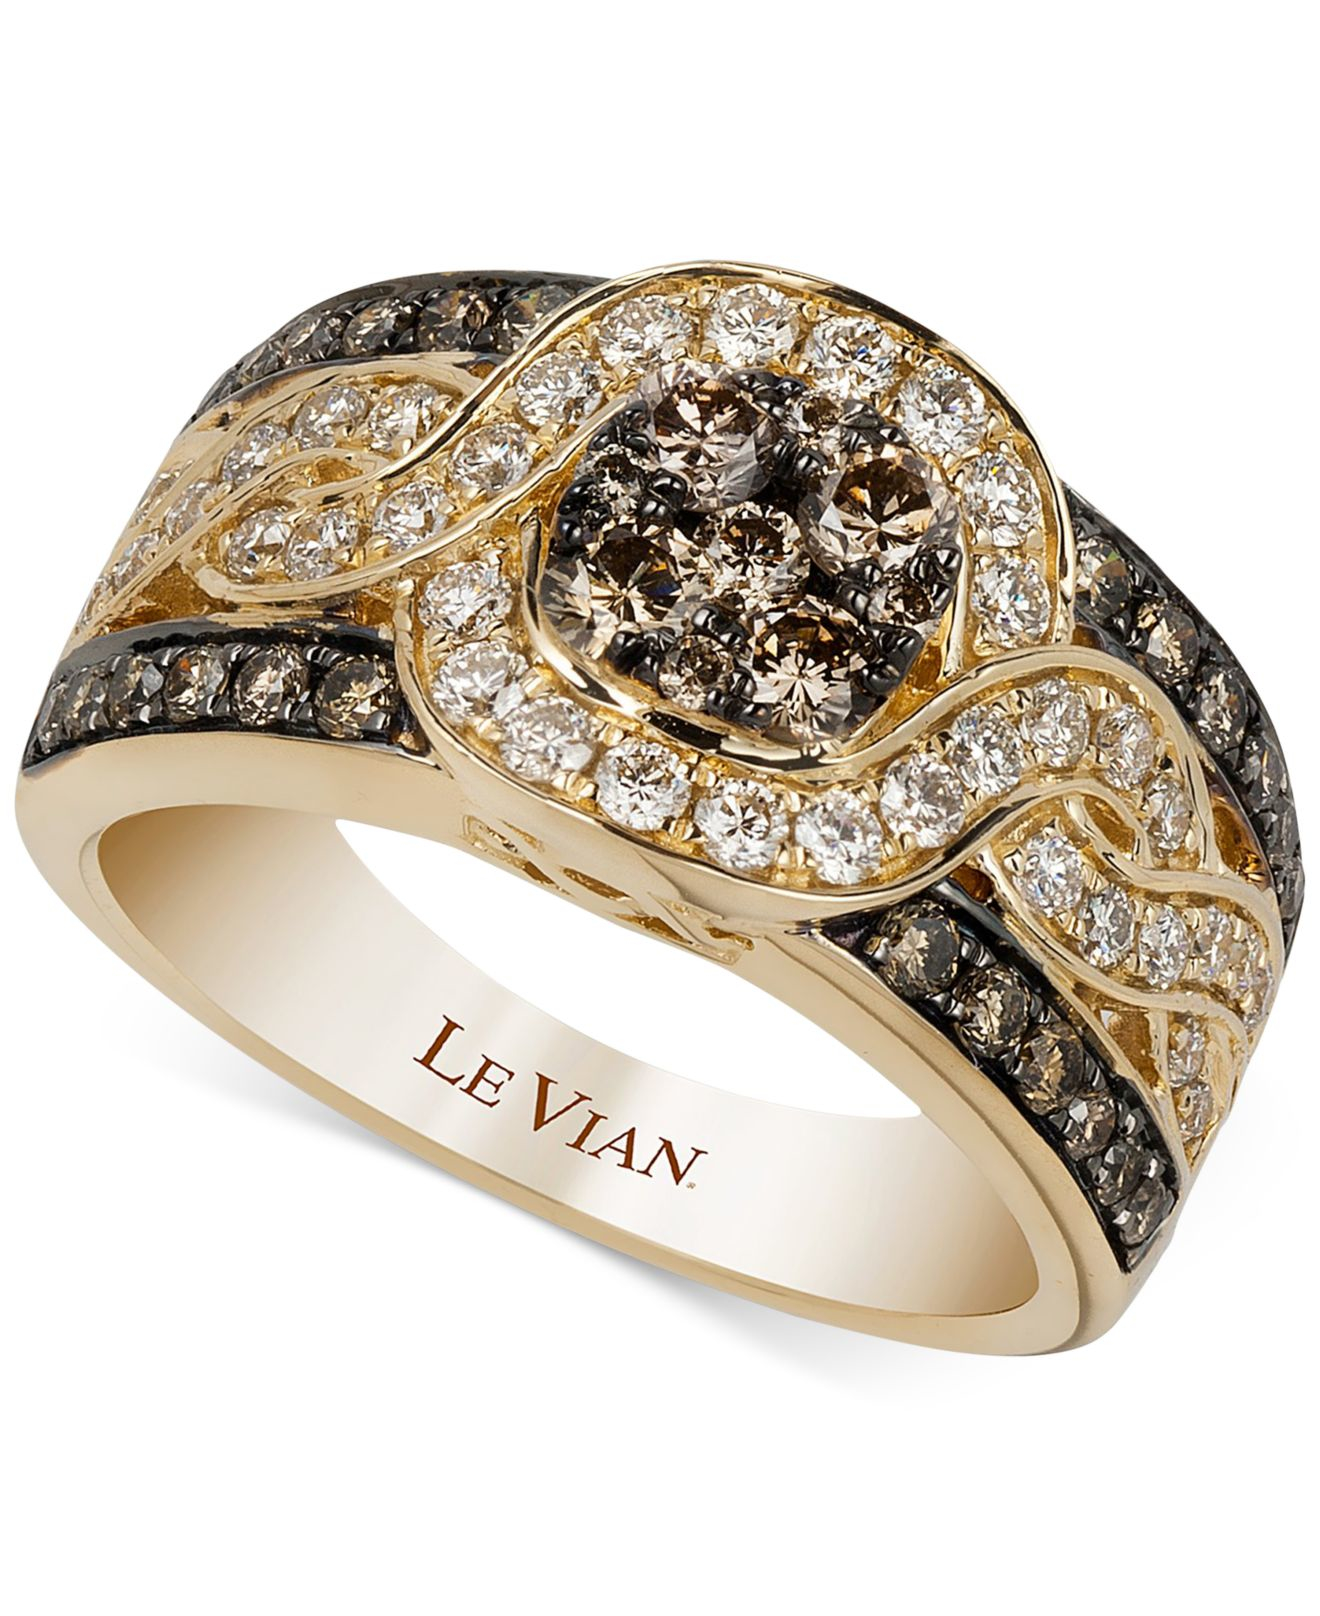 pinterest bridal vian piece images on levian one setting just rings love le diamonds this colored brown bands ring wedding best chocolate levianjewelry diamond